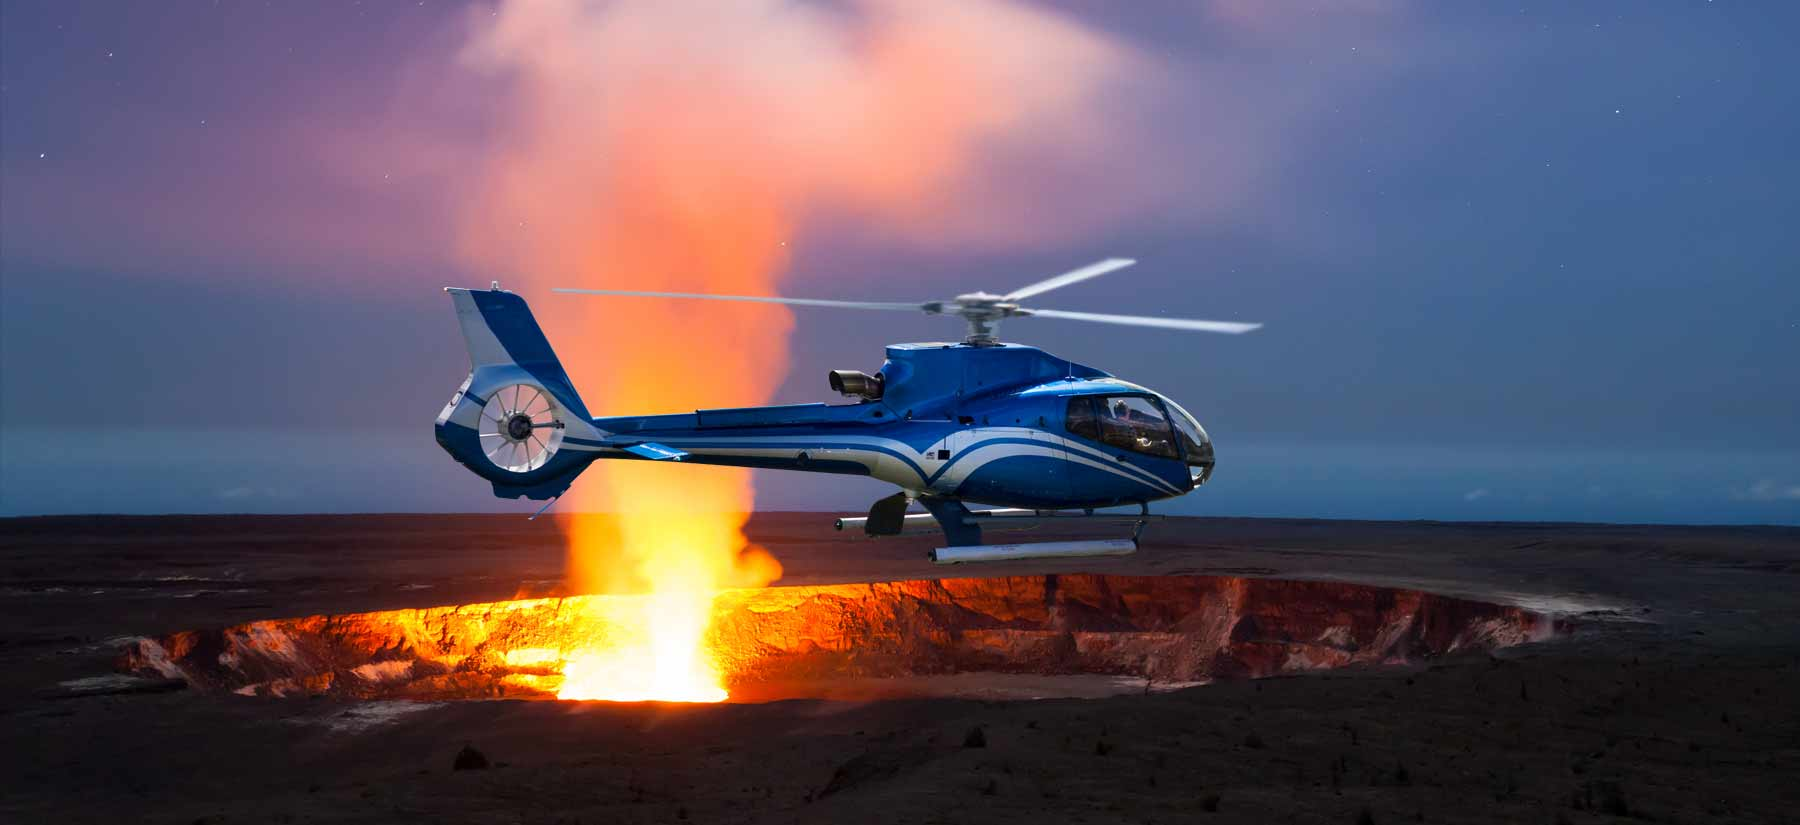 Night Helicopter Tour Big Island